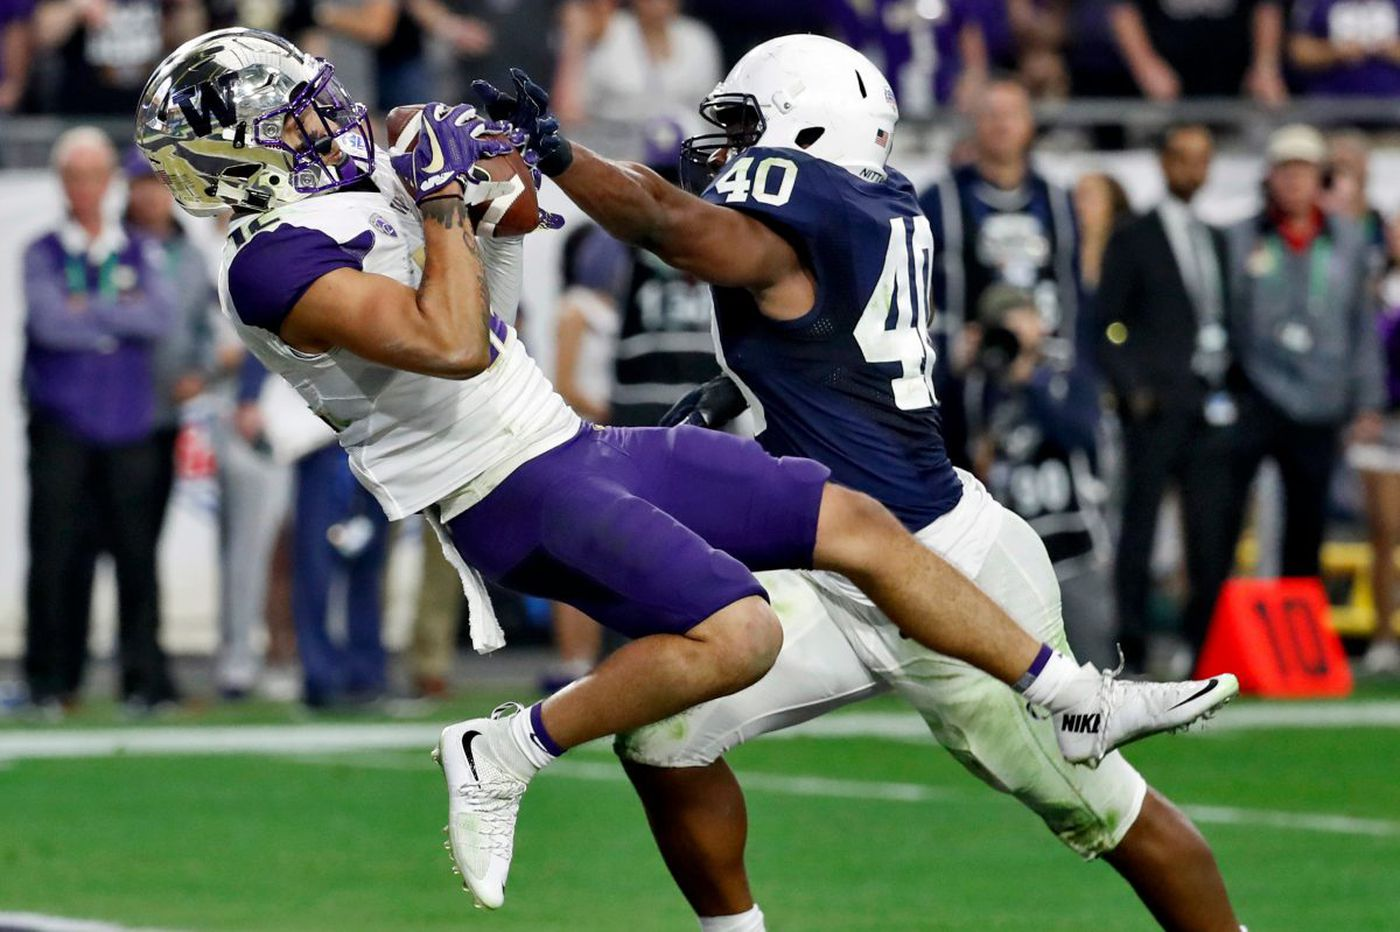 a9647c672 Seven Penn State players heading to NFL as undrafted free agents